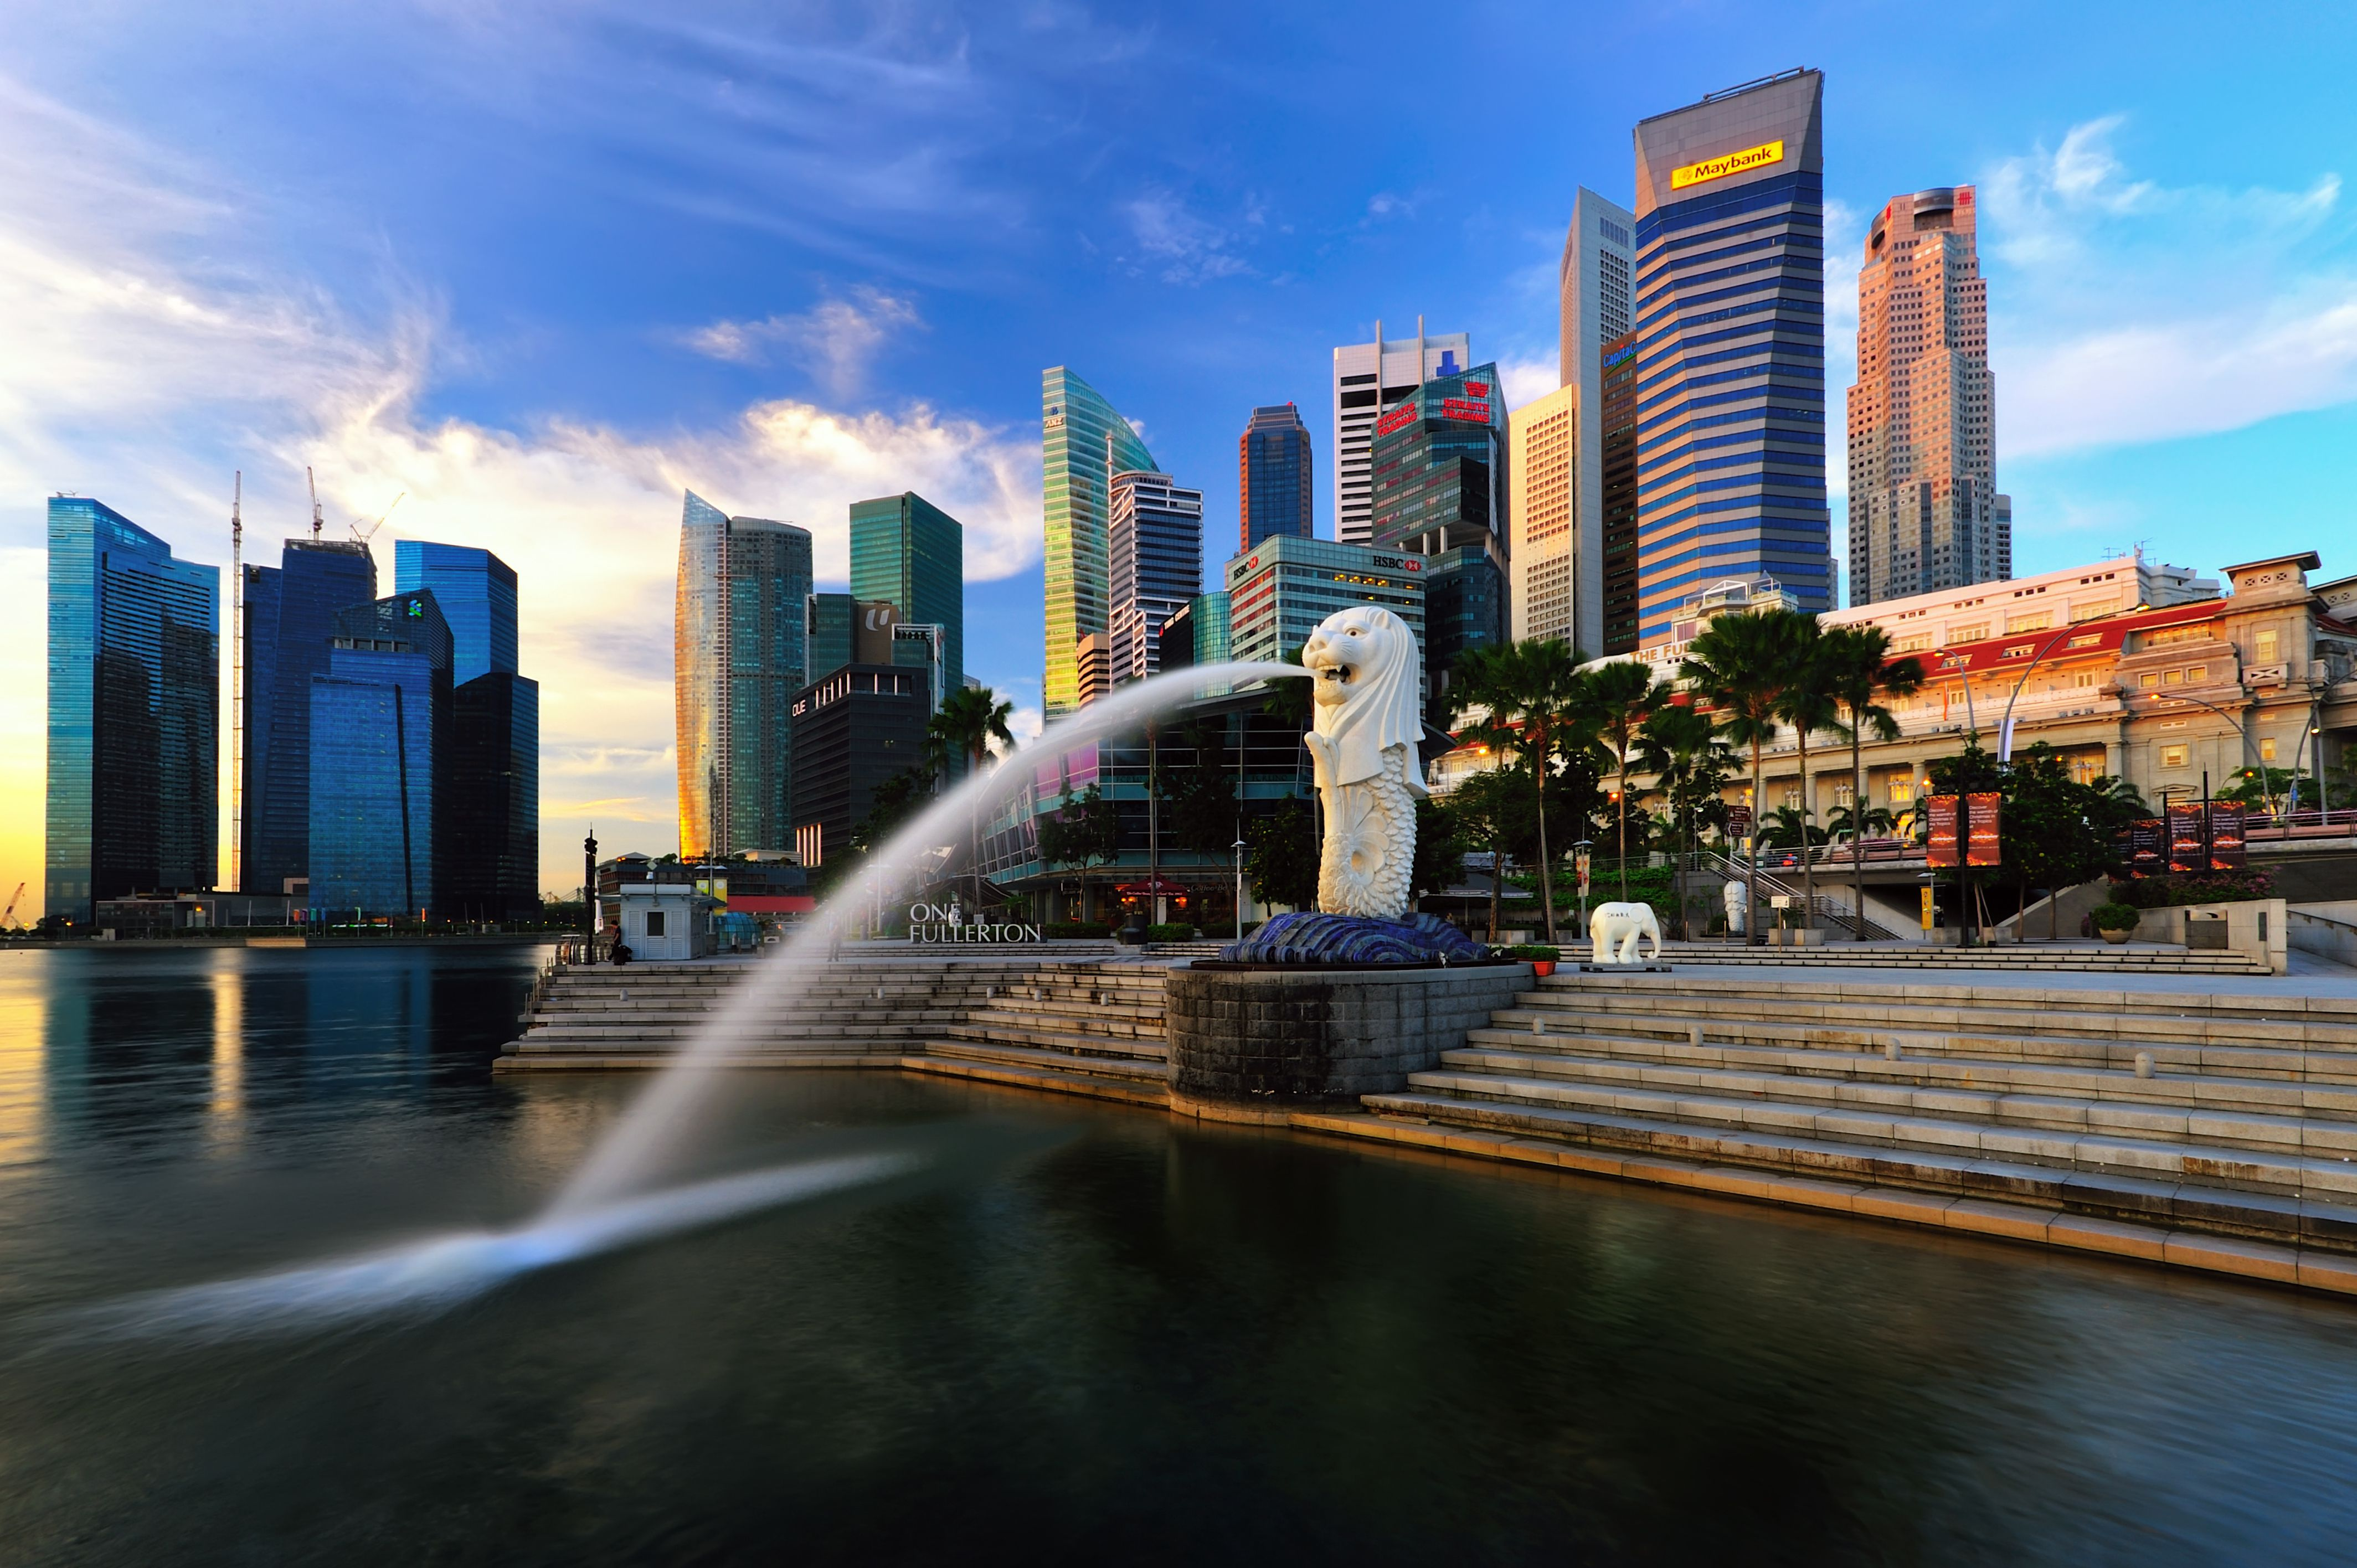 Singapore's GDP foretasted to grow by 0.1% in Q2 2019